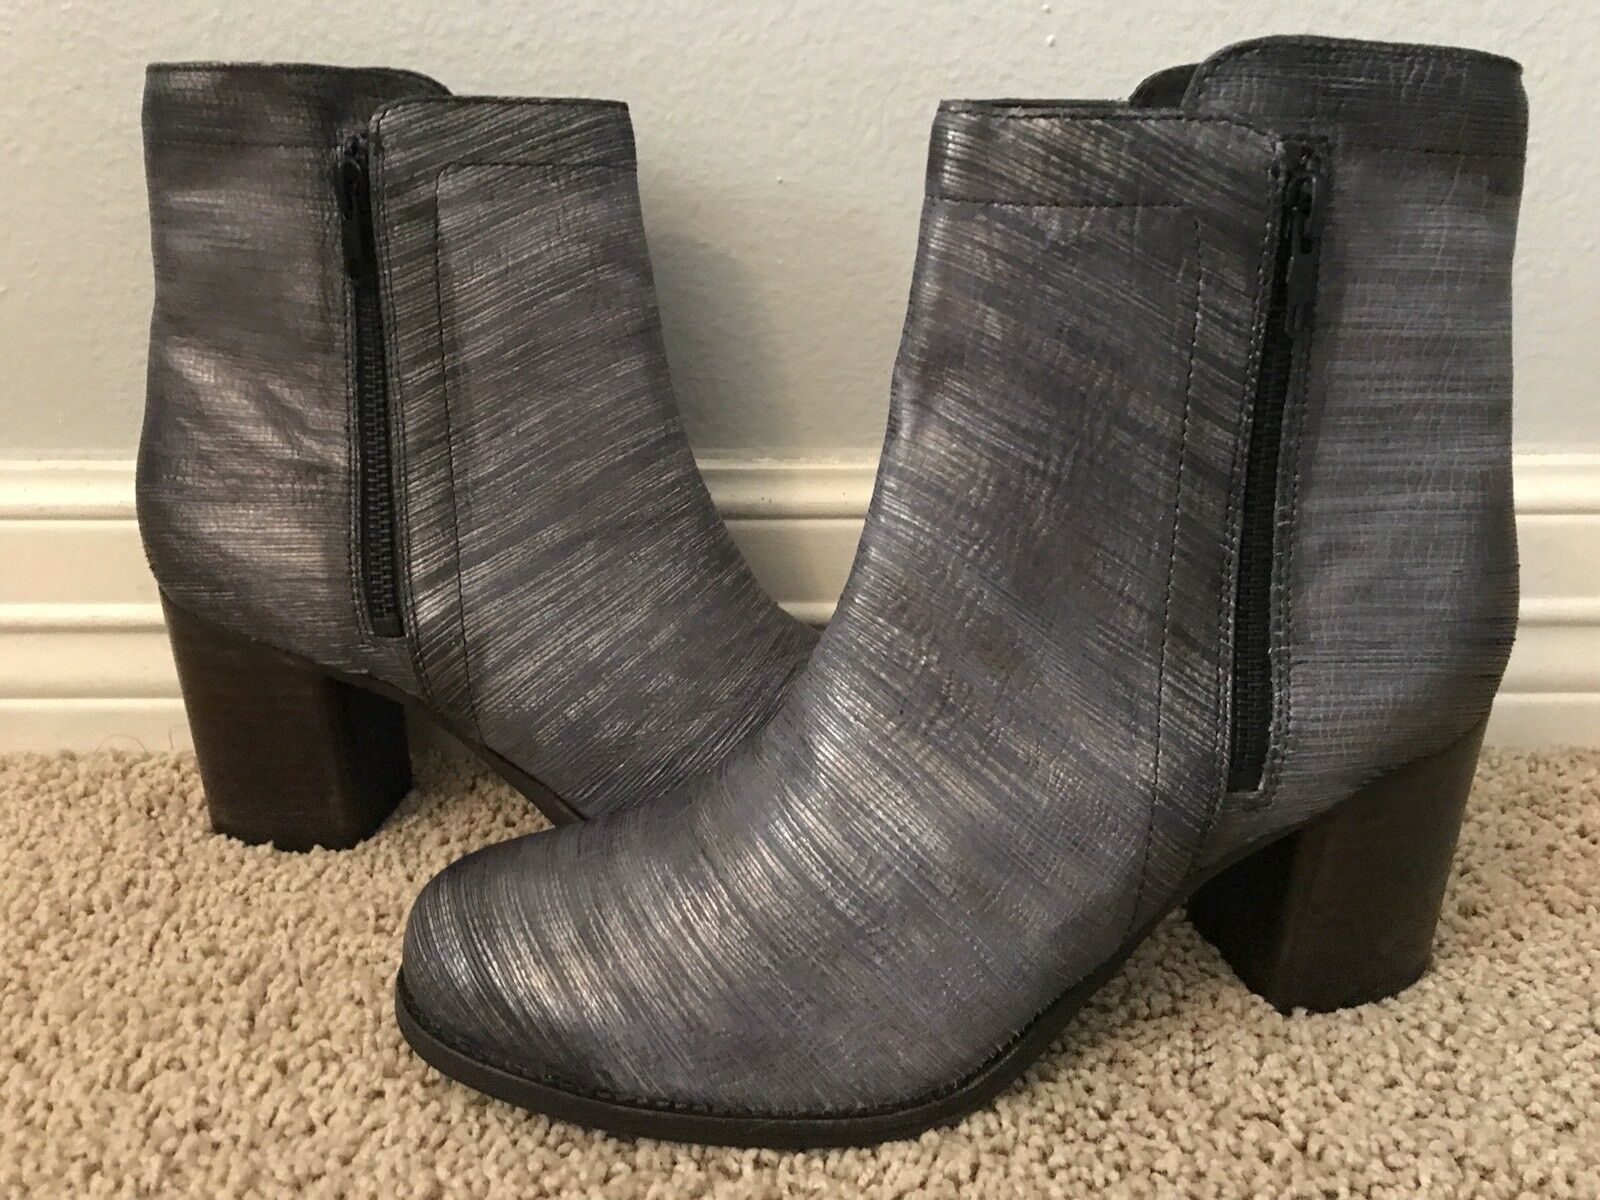 New FRYE Women's Addie Double Zip Pewter Pewter Pewter Grey Leather Boots Sz 9.5  398 4854e9